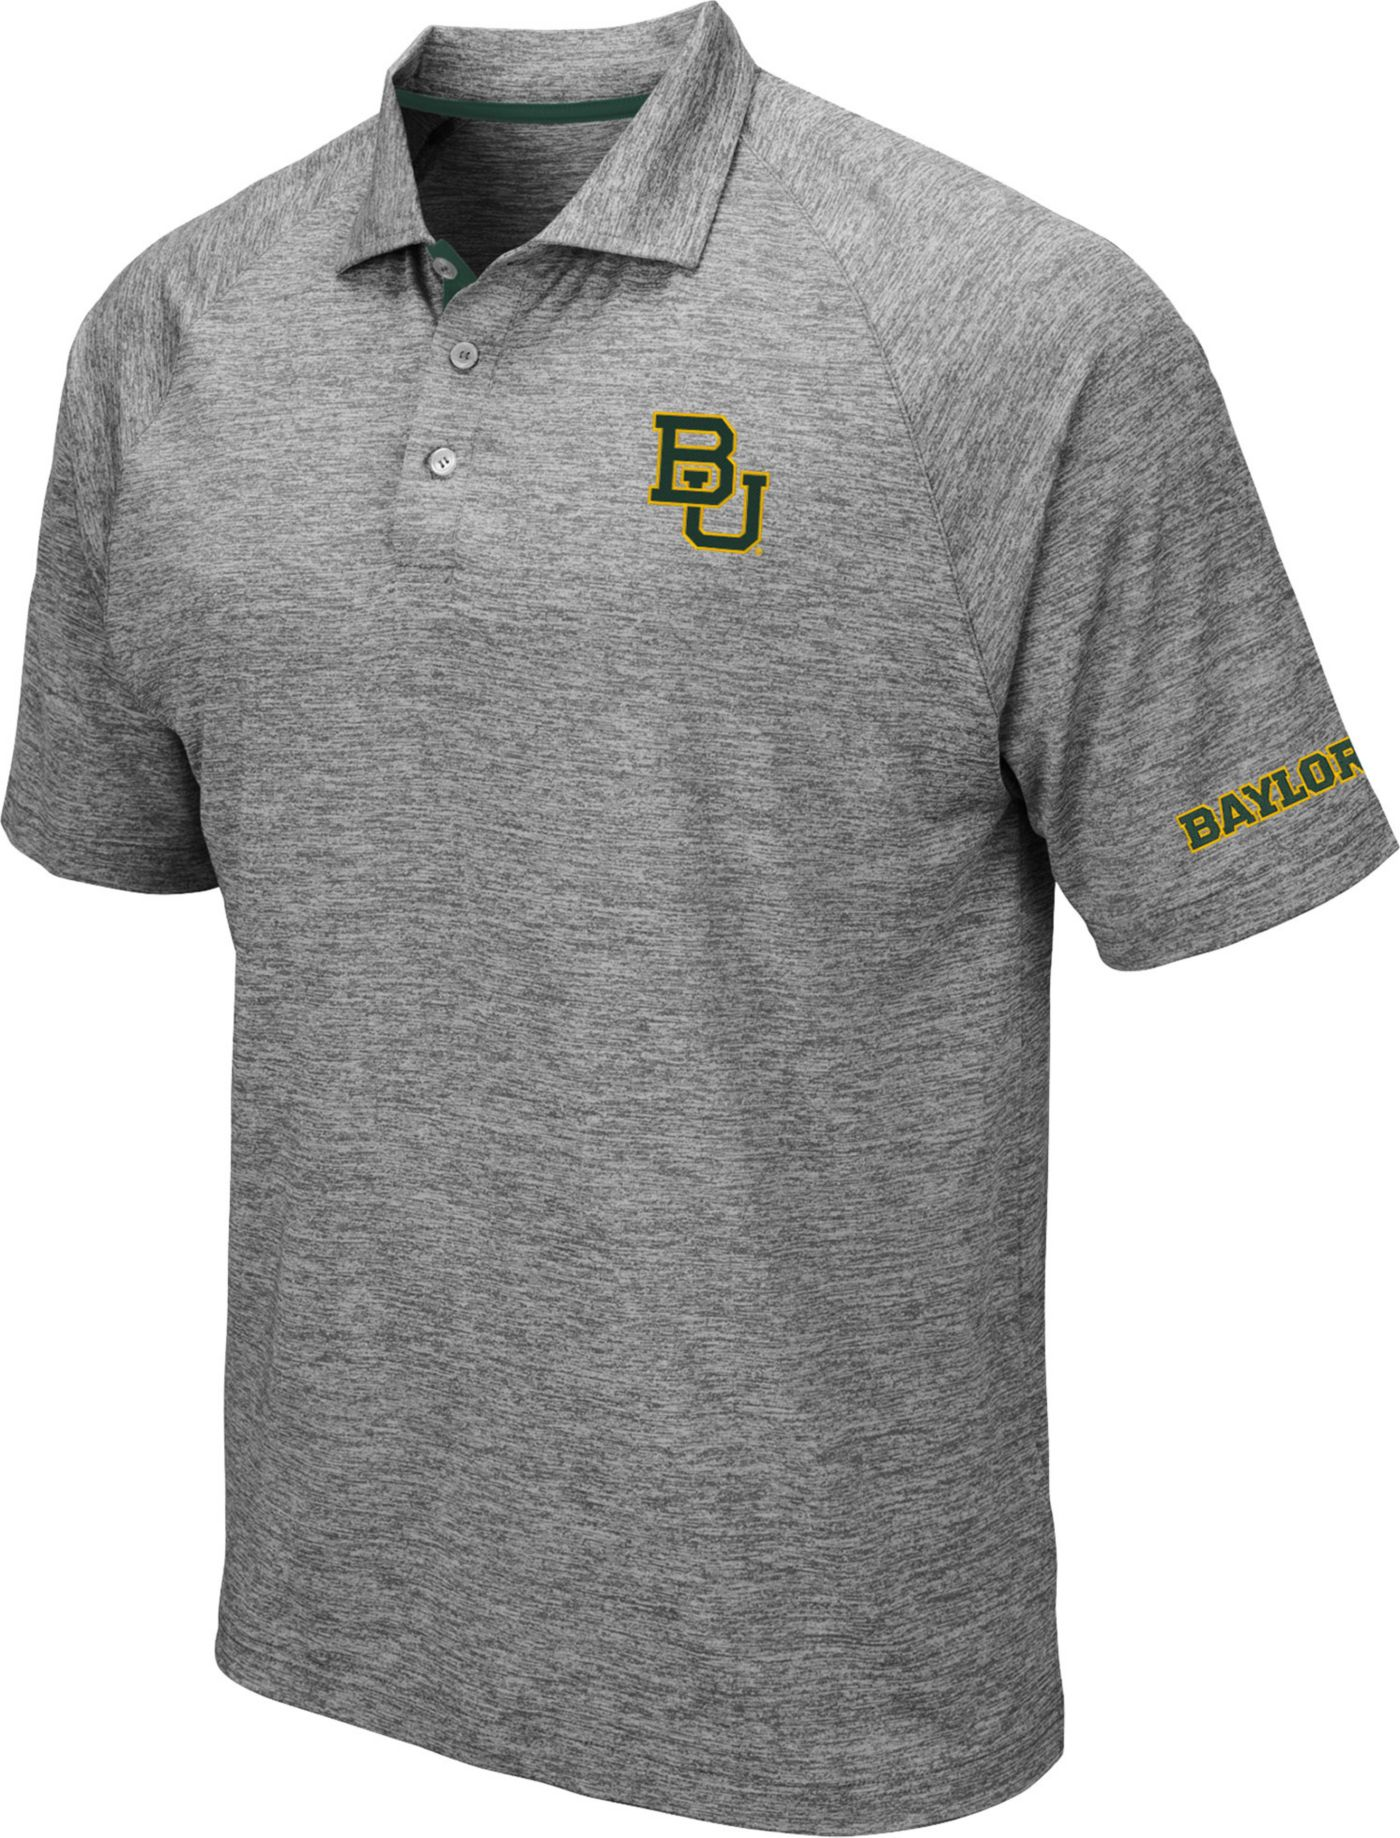 Colosseum Men's Baylor Bears Grey Chip Shot Polo